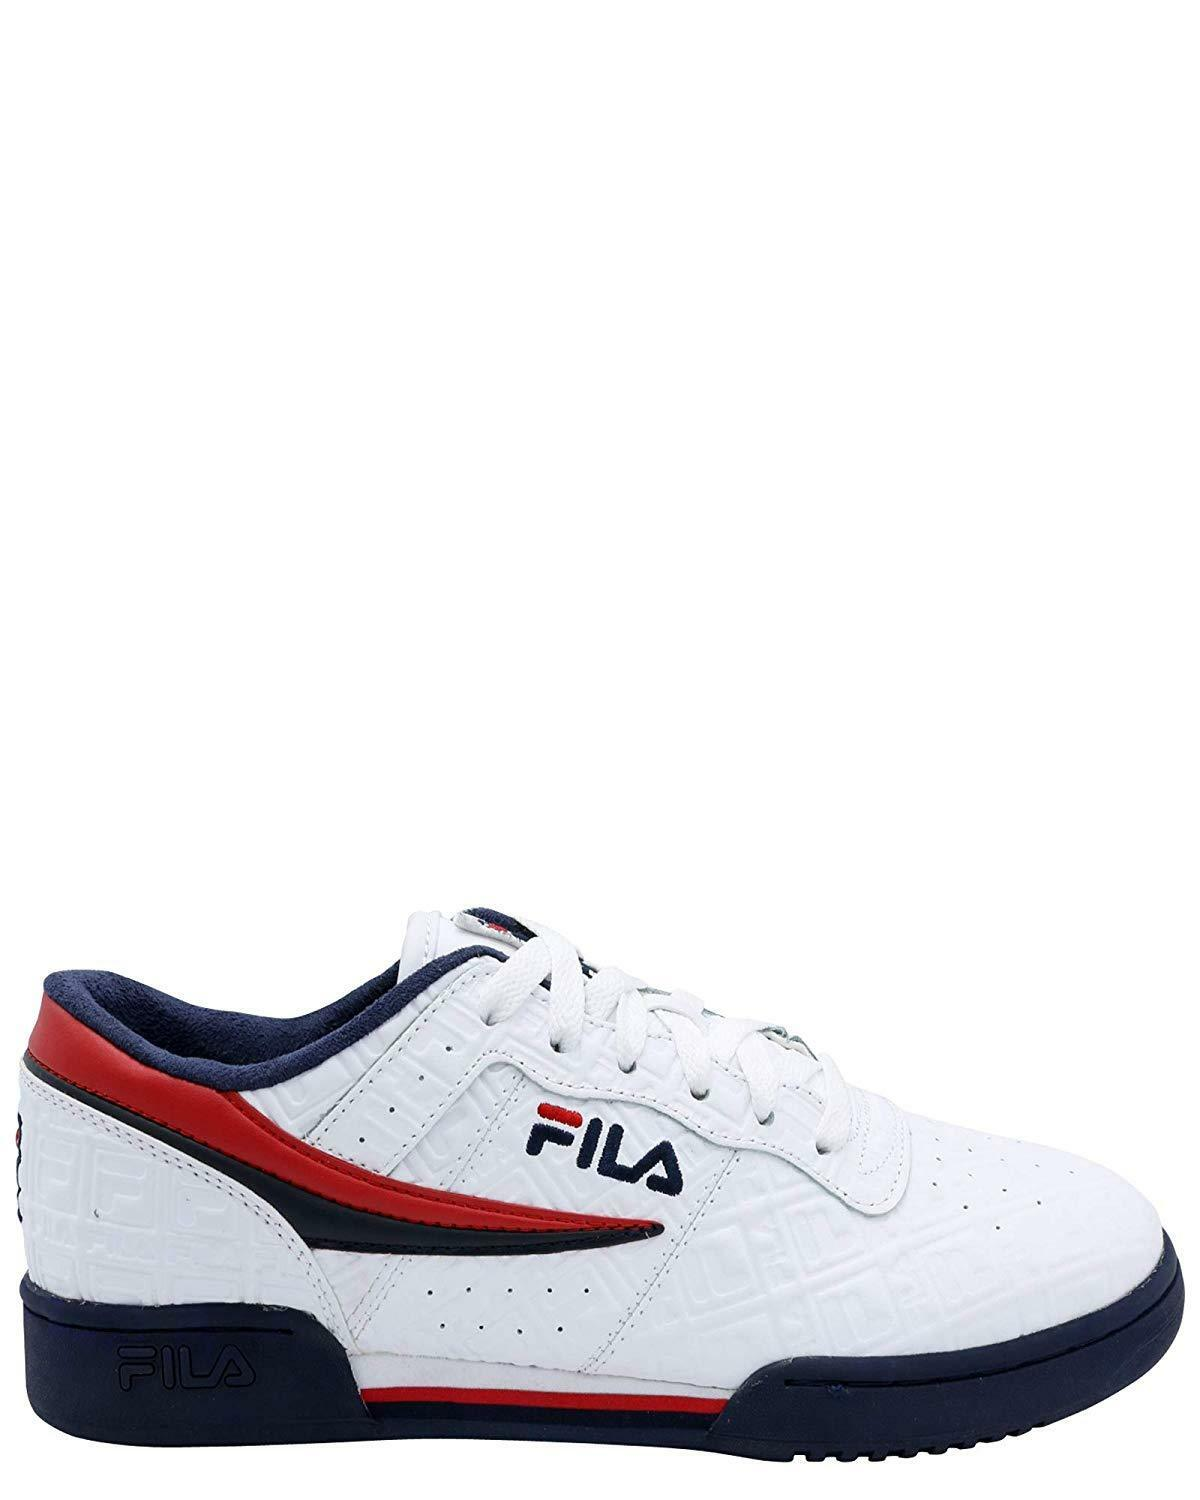 Fila Original Fitness Embossed Small F-Box White/Navy-Red (1FM00128-125)